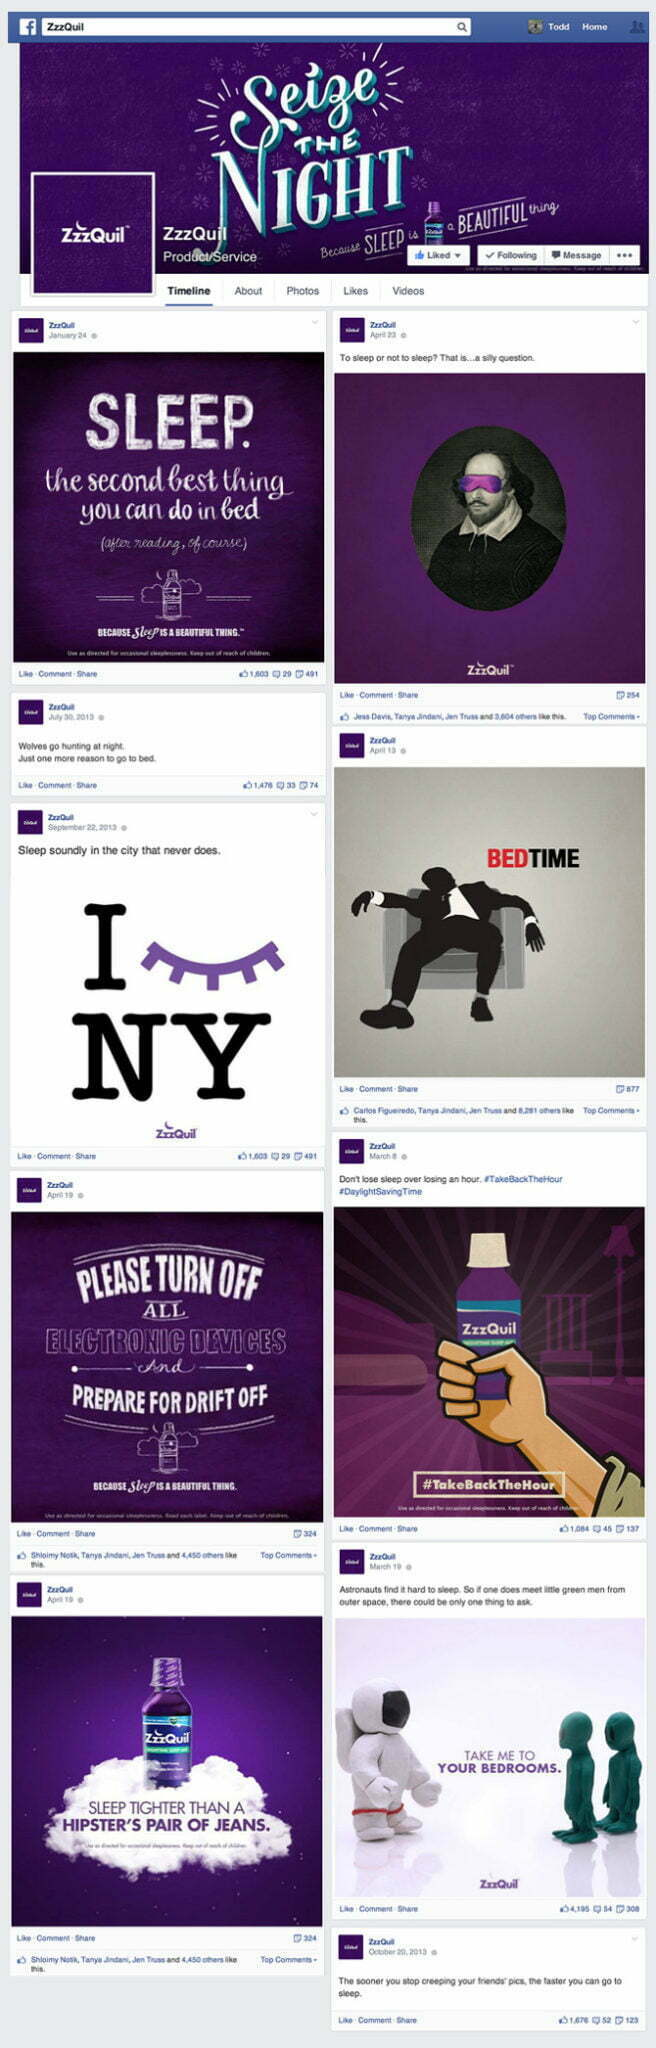 Bizadmark Advertising Agency ZZZquil Campaign Social